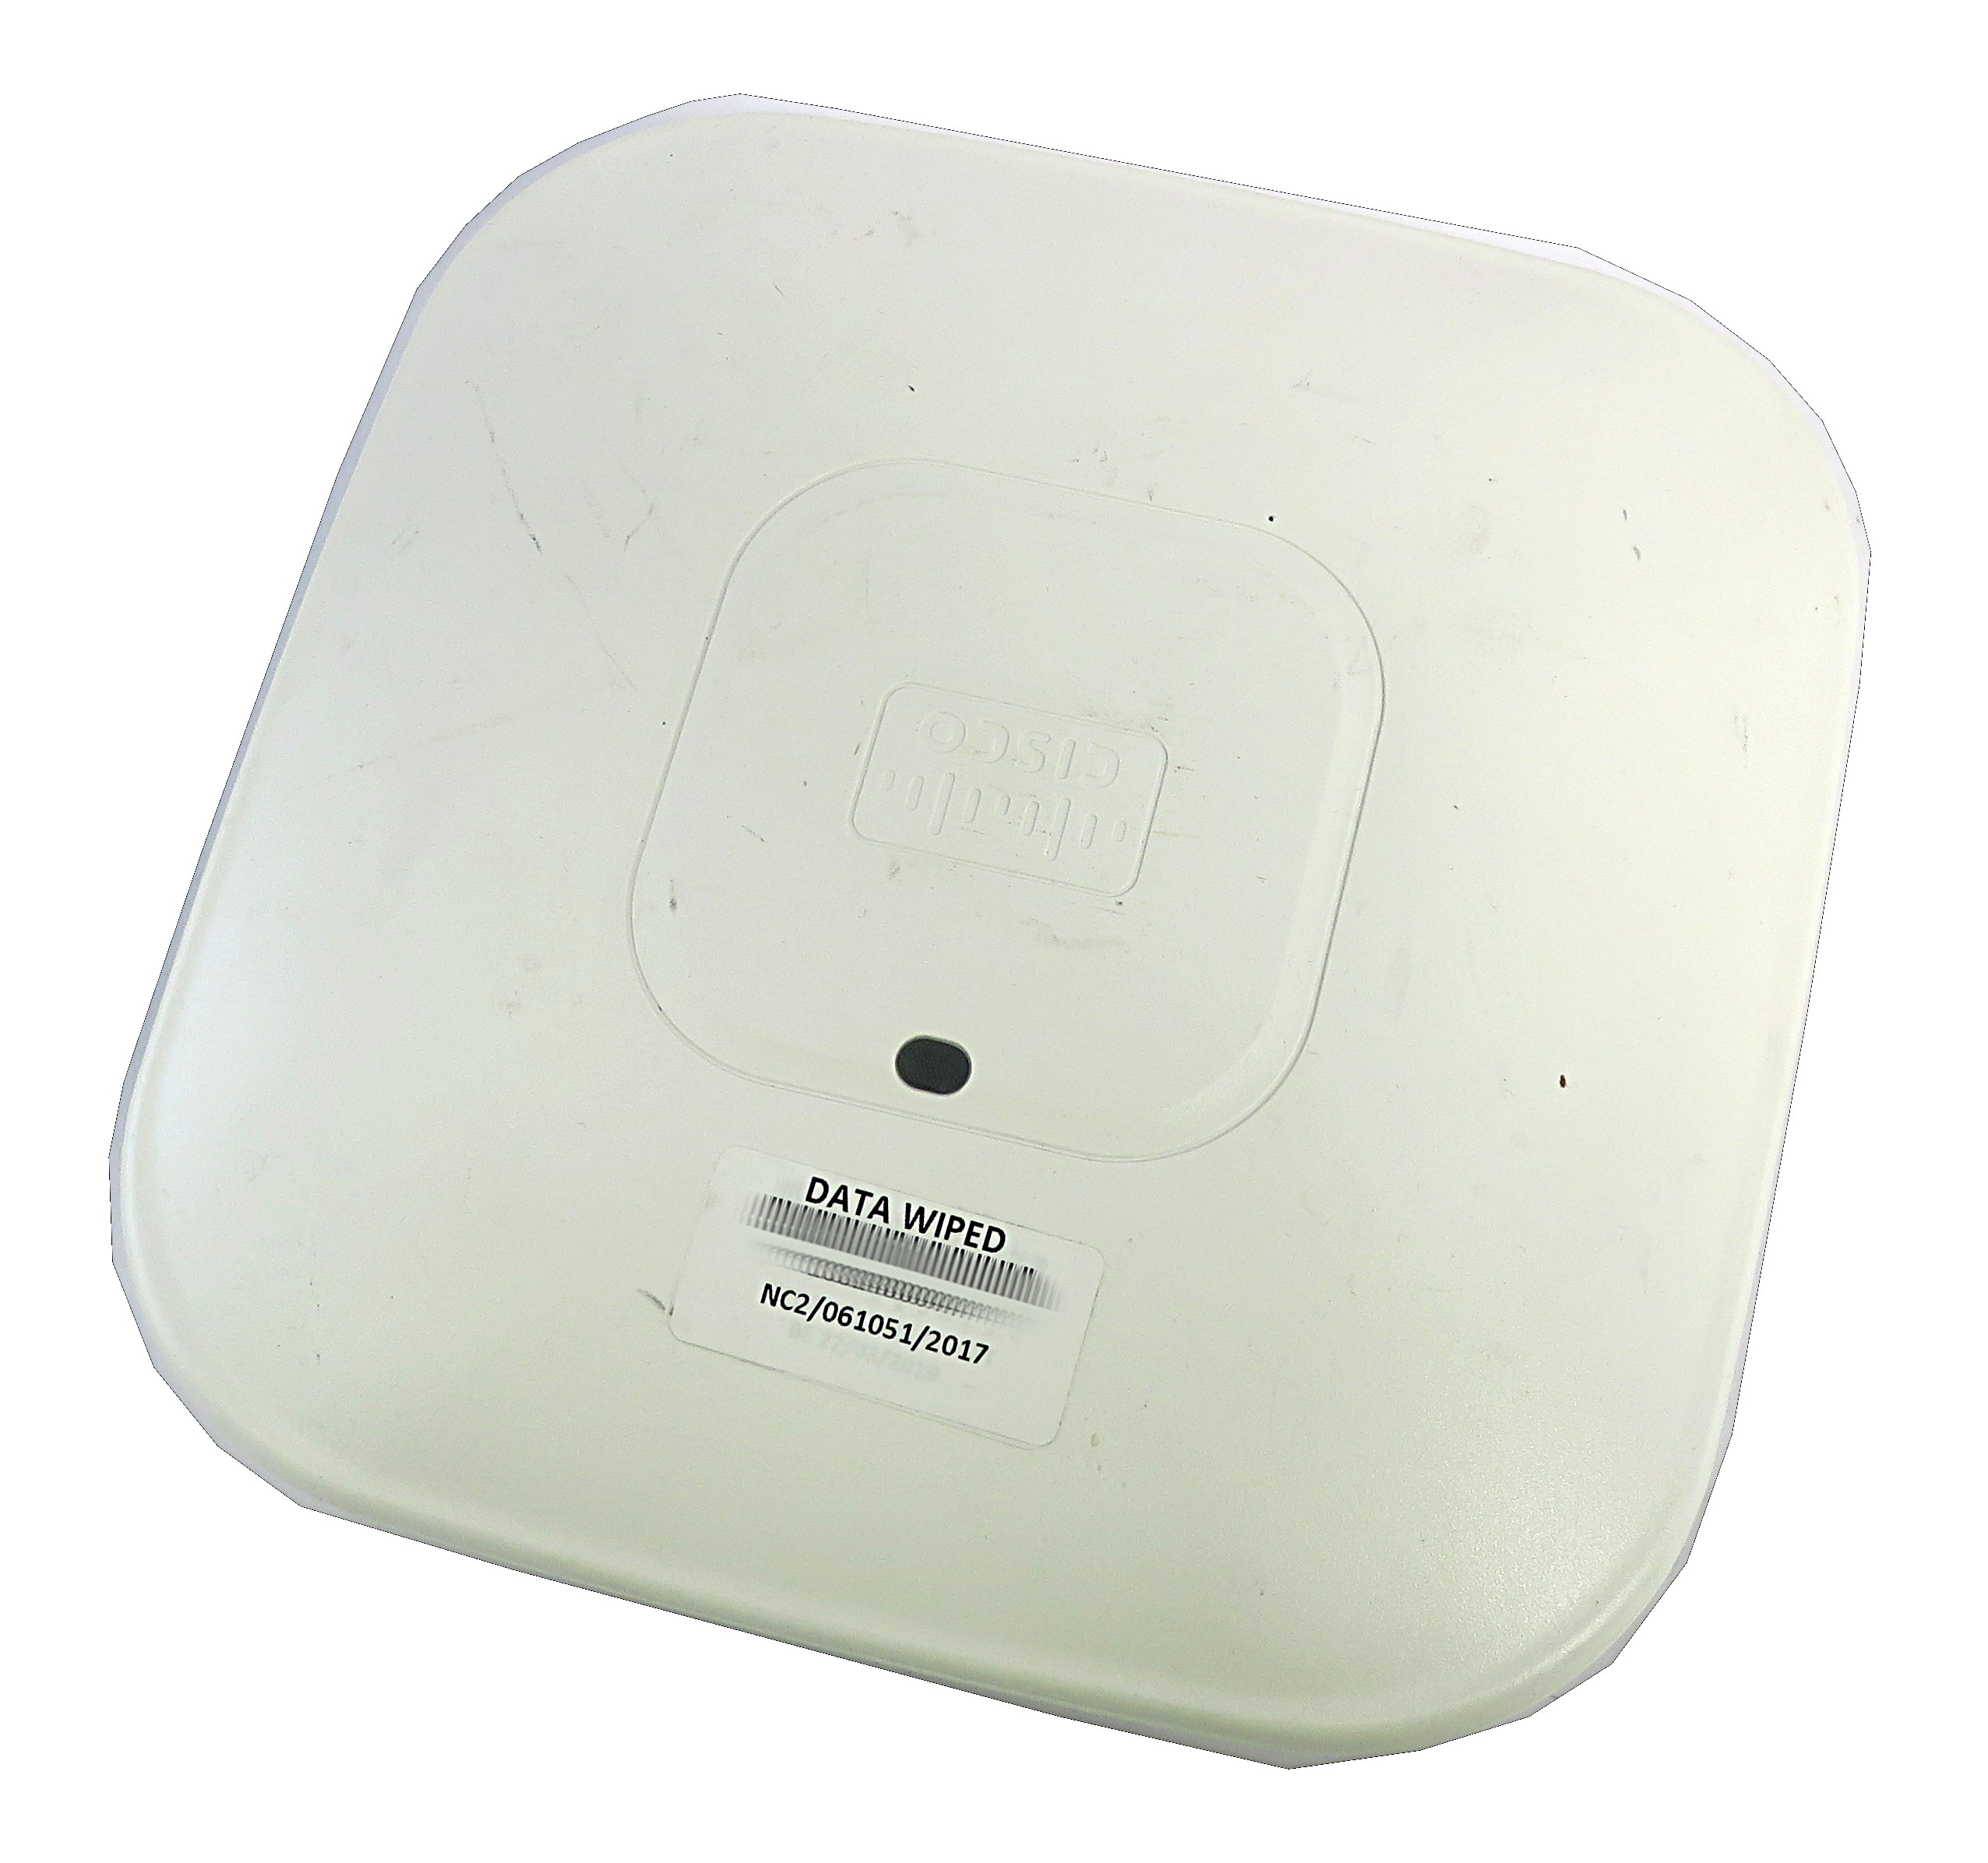 Set of Four Cisco AIR-CAP2602I-E-K9 Dual-band 802.11a/g/n Wireless Access Points